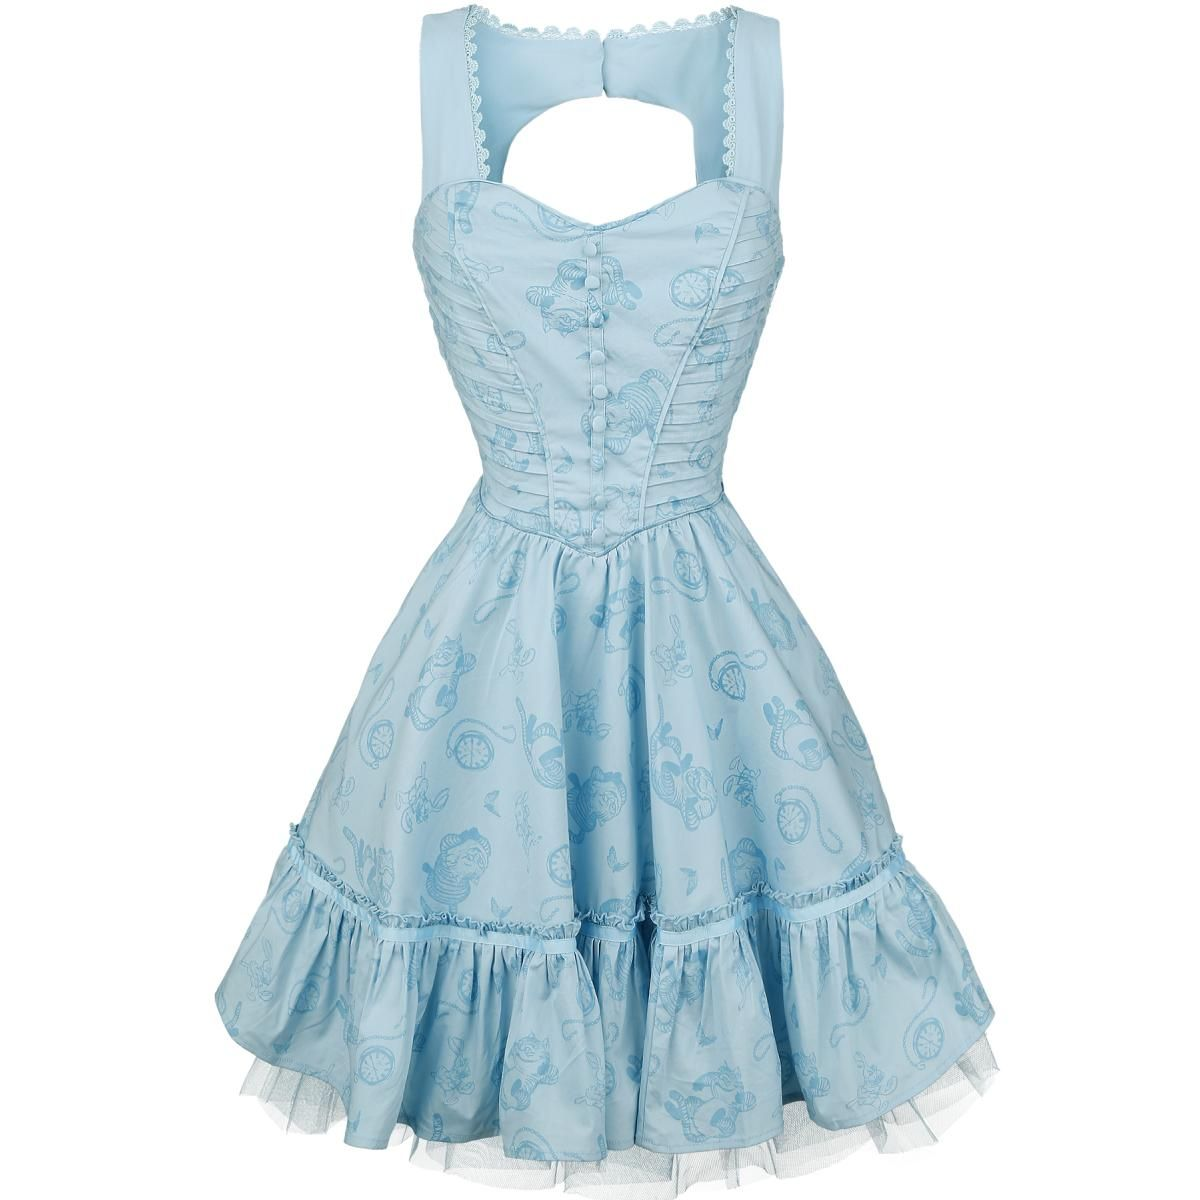 Through The Looking Glass - Alice Classic Dress | Walt disney ...